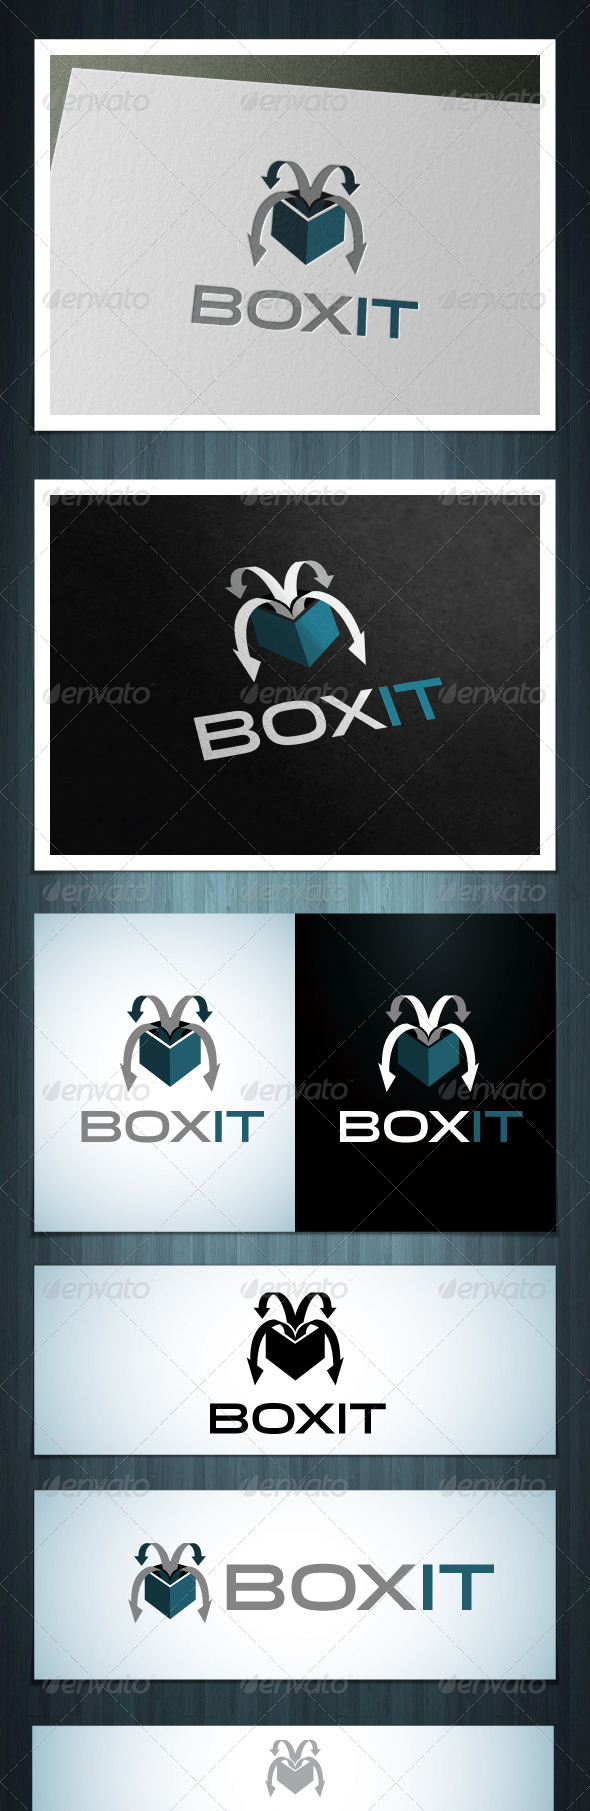 BoxIT - Vector Abstract